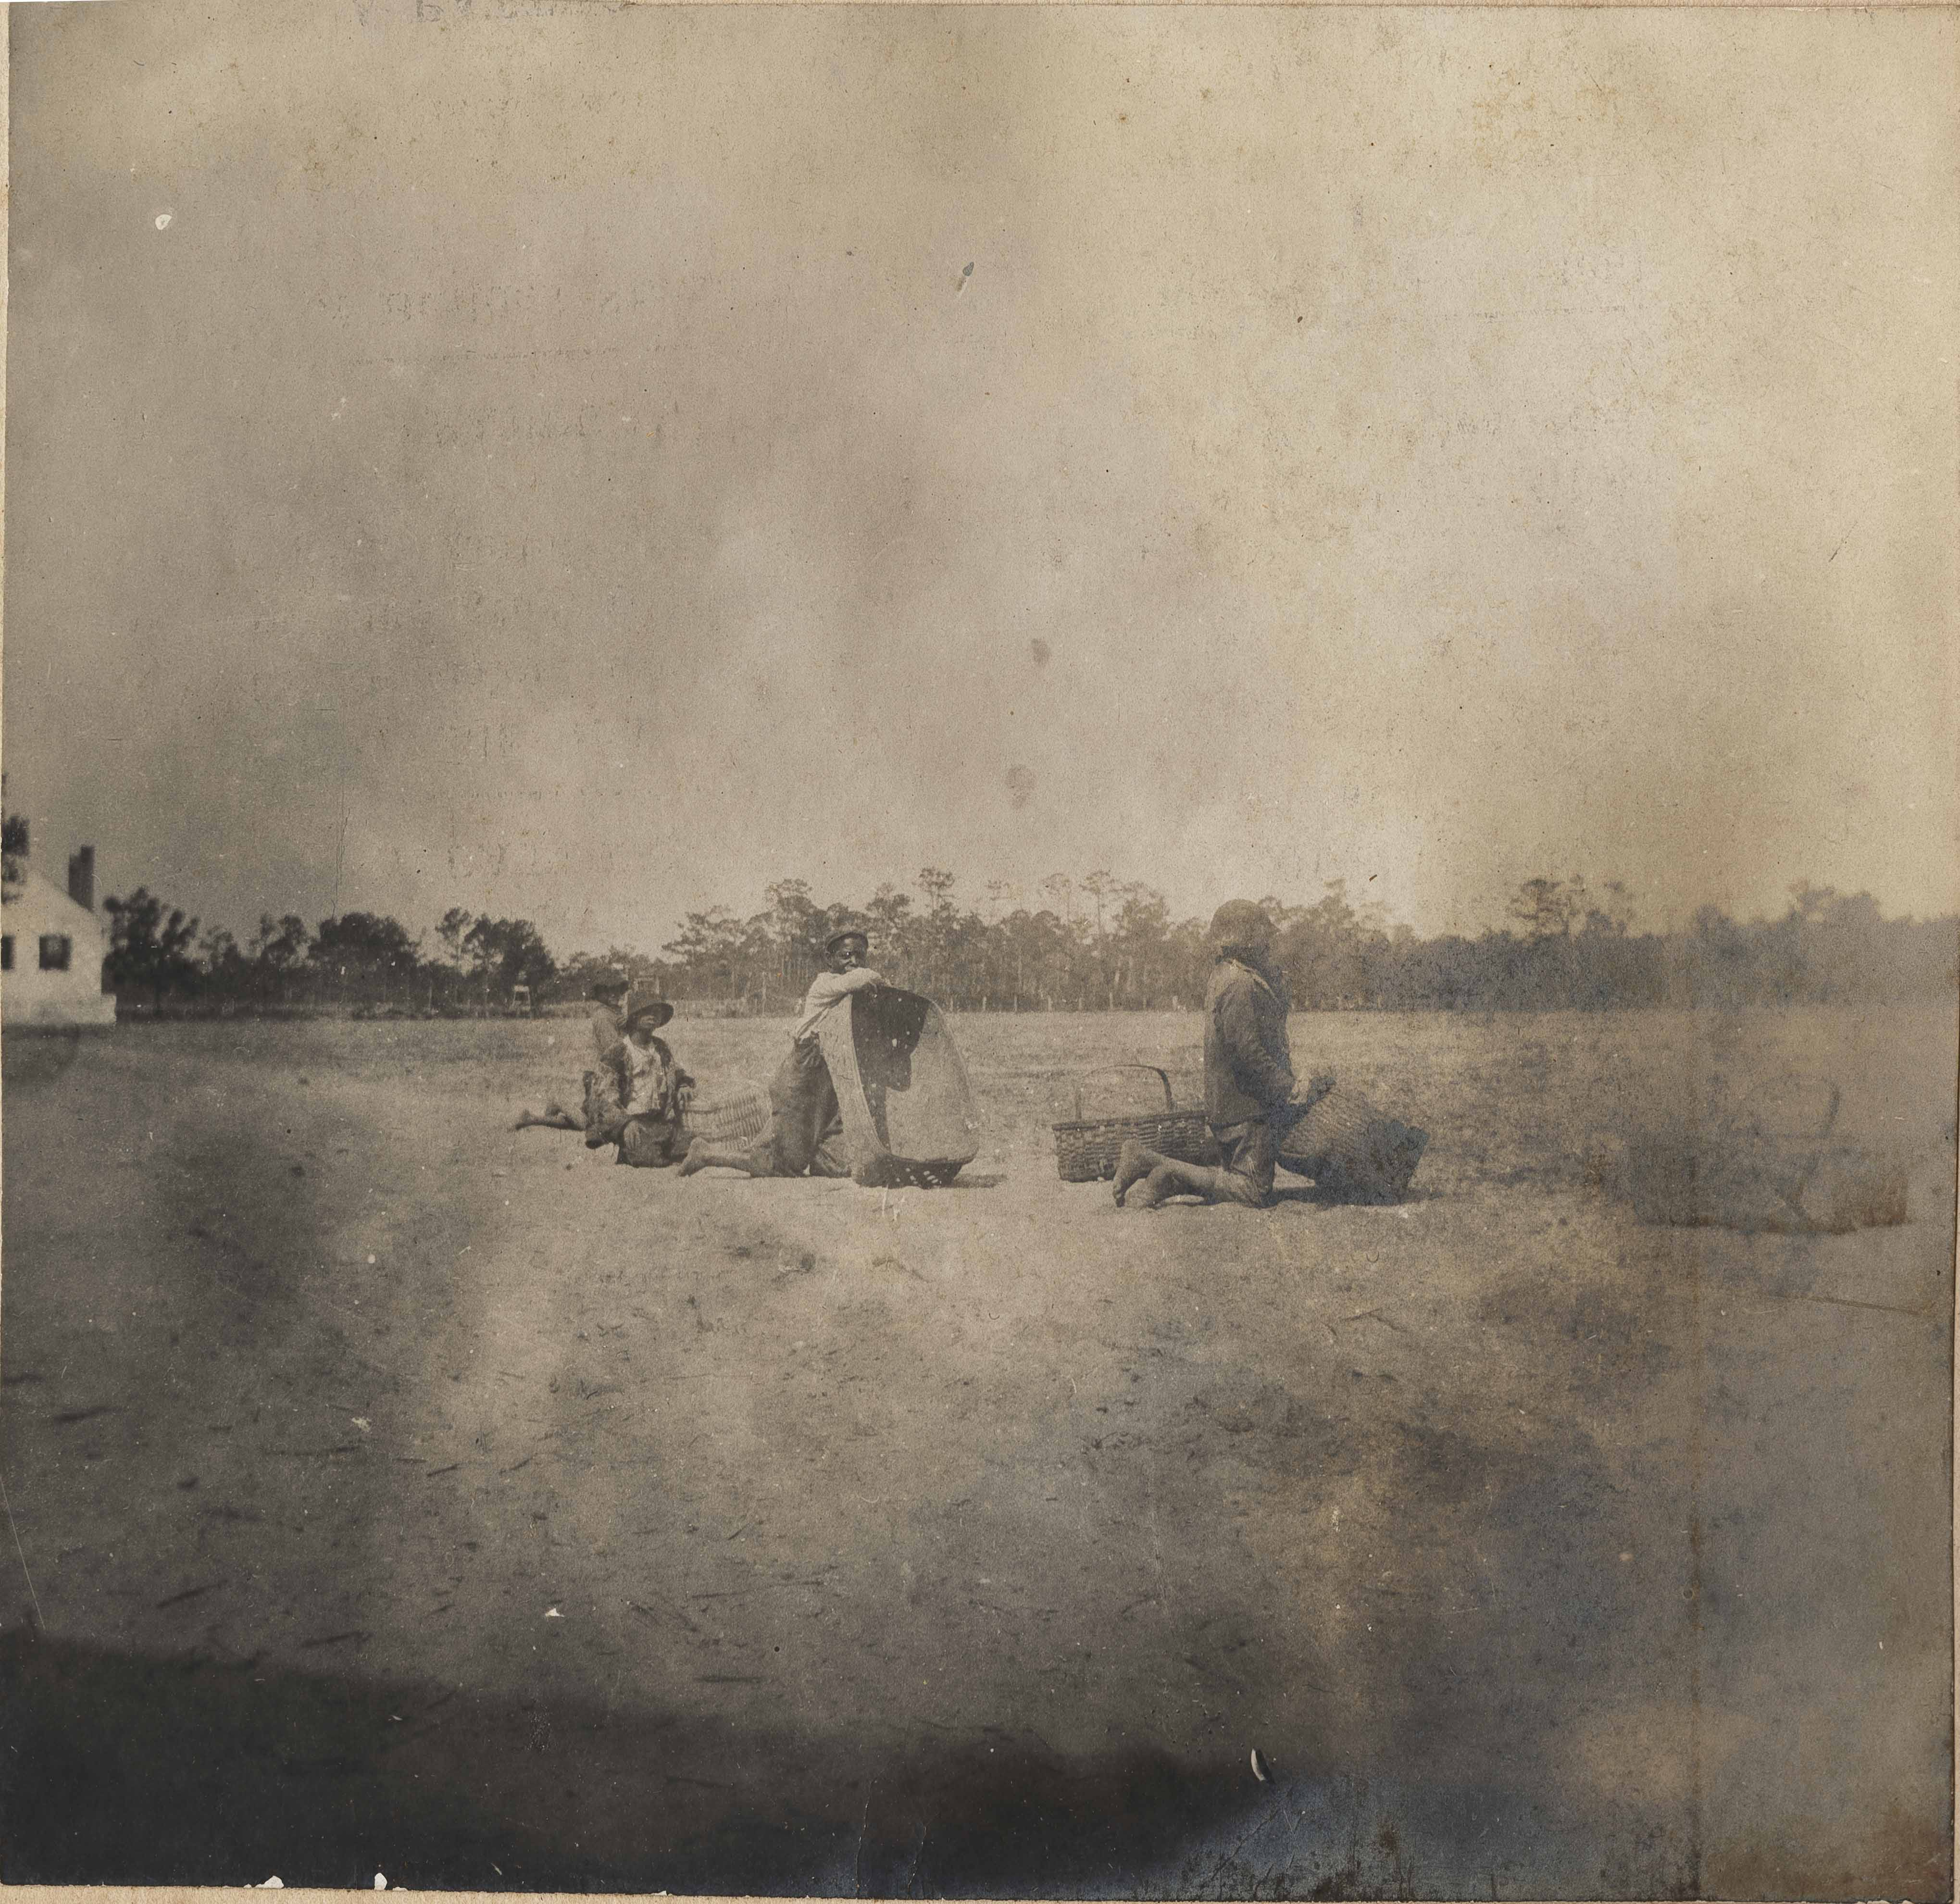 Men resting on baskets at edge of field